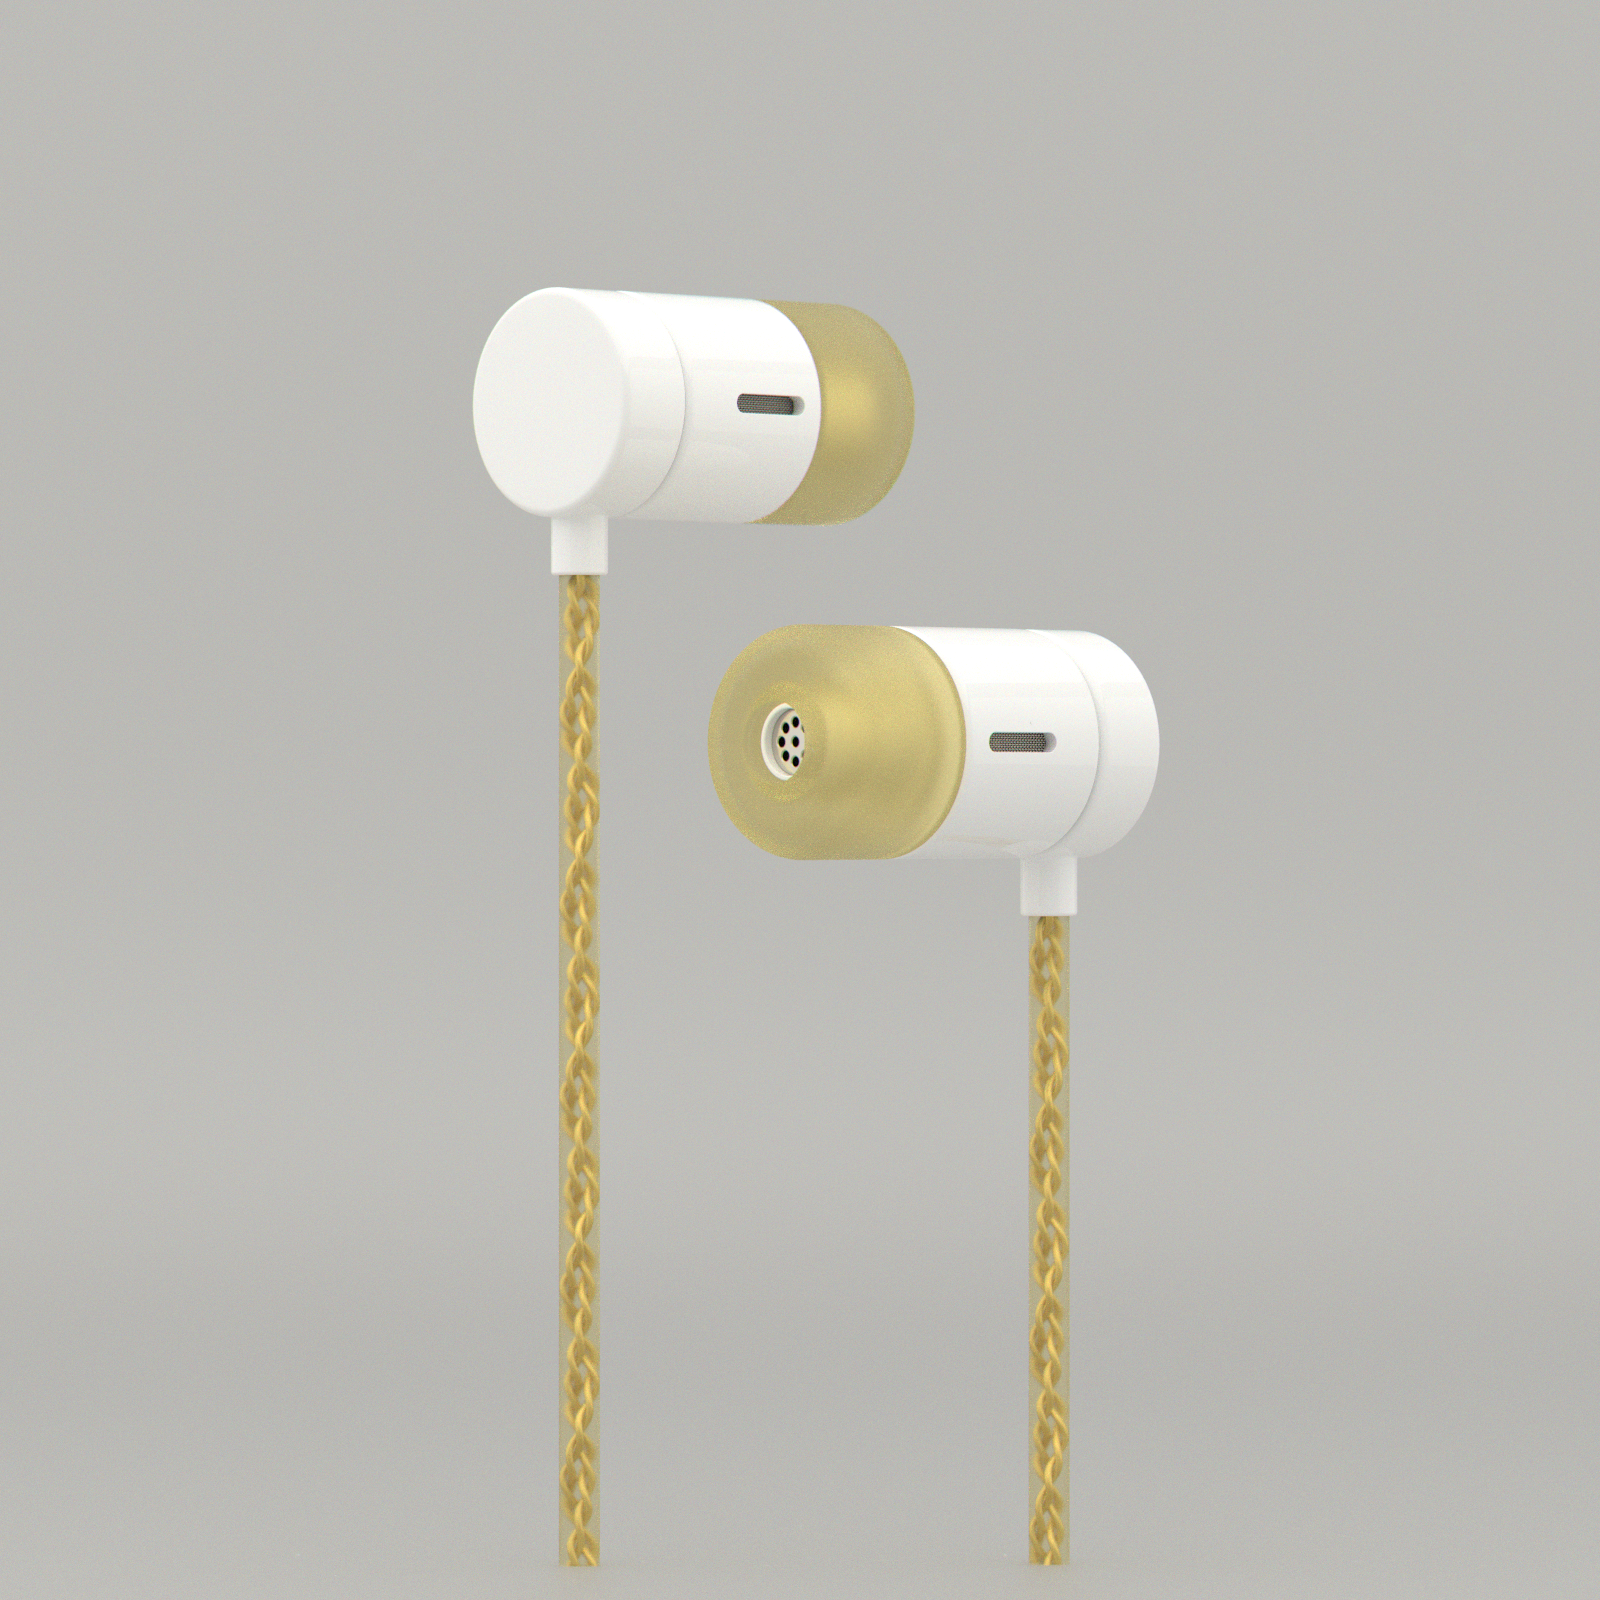 Modular In-Ear Headphones